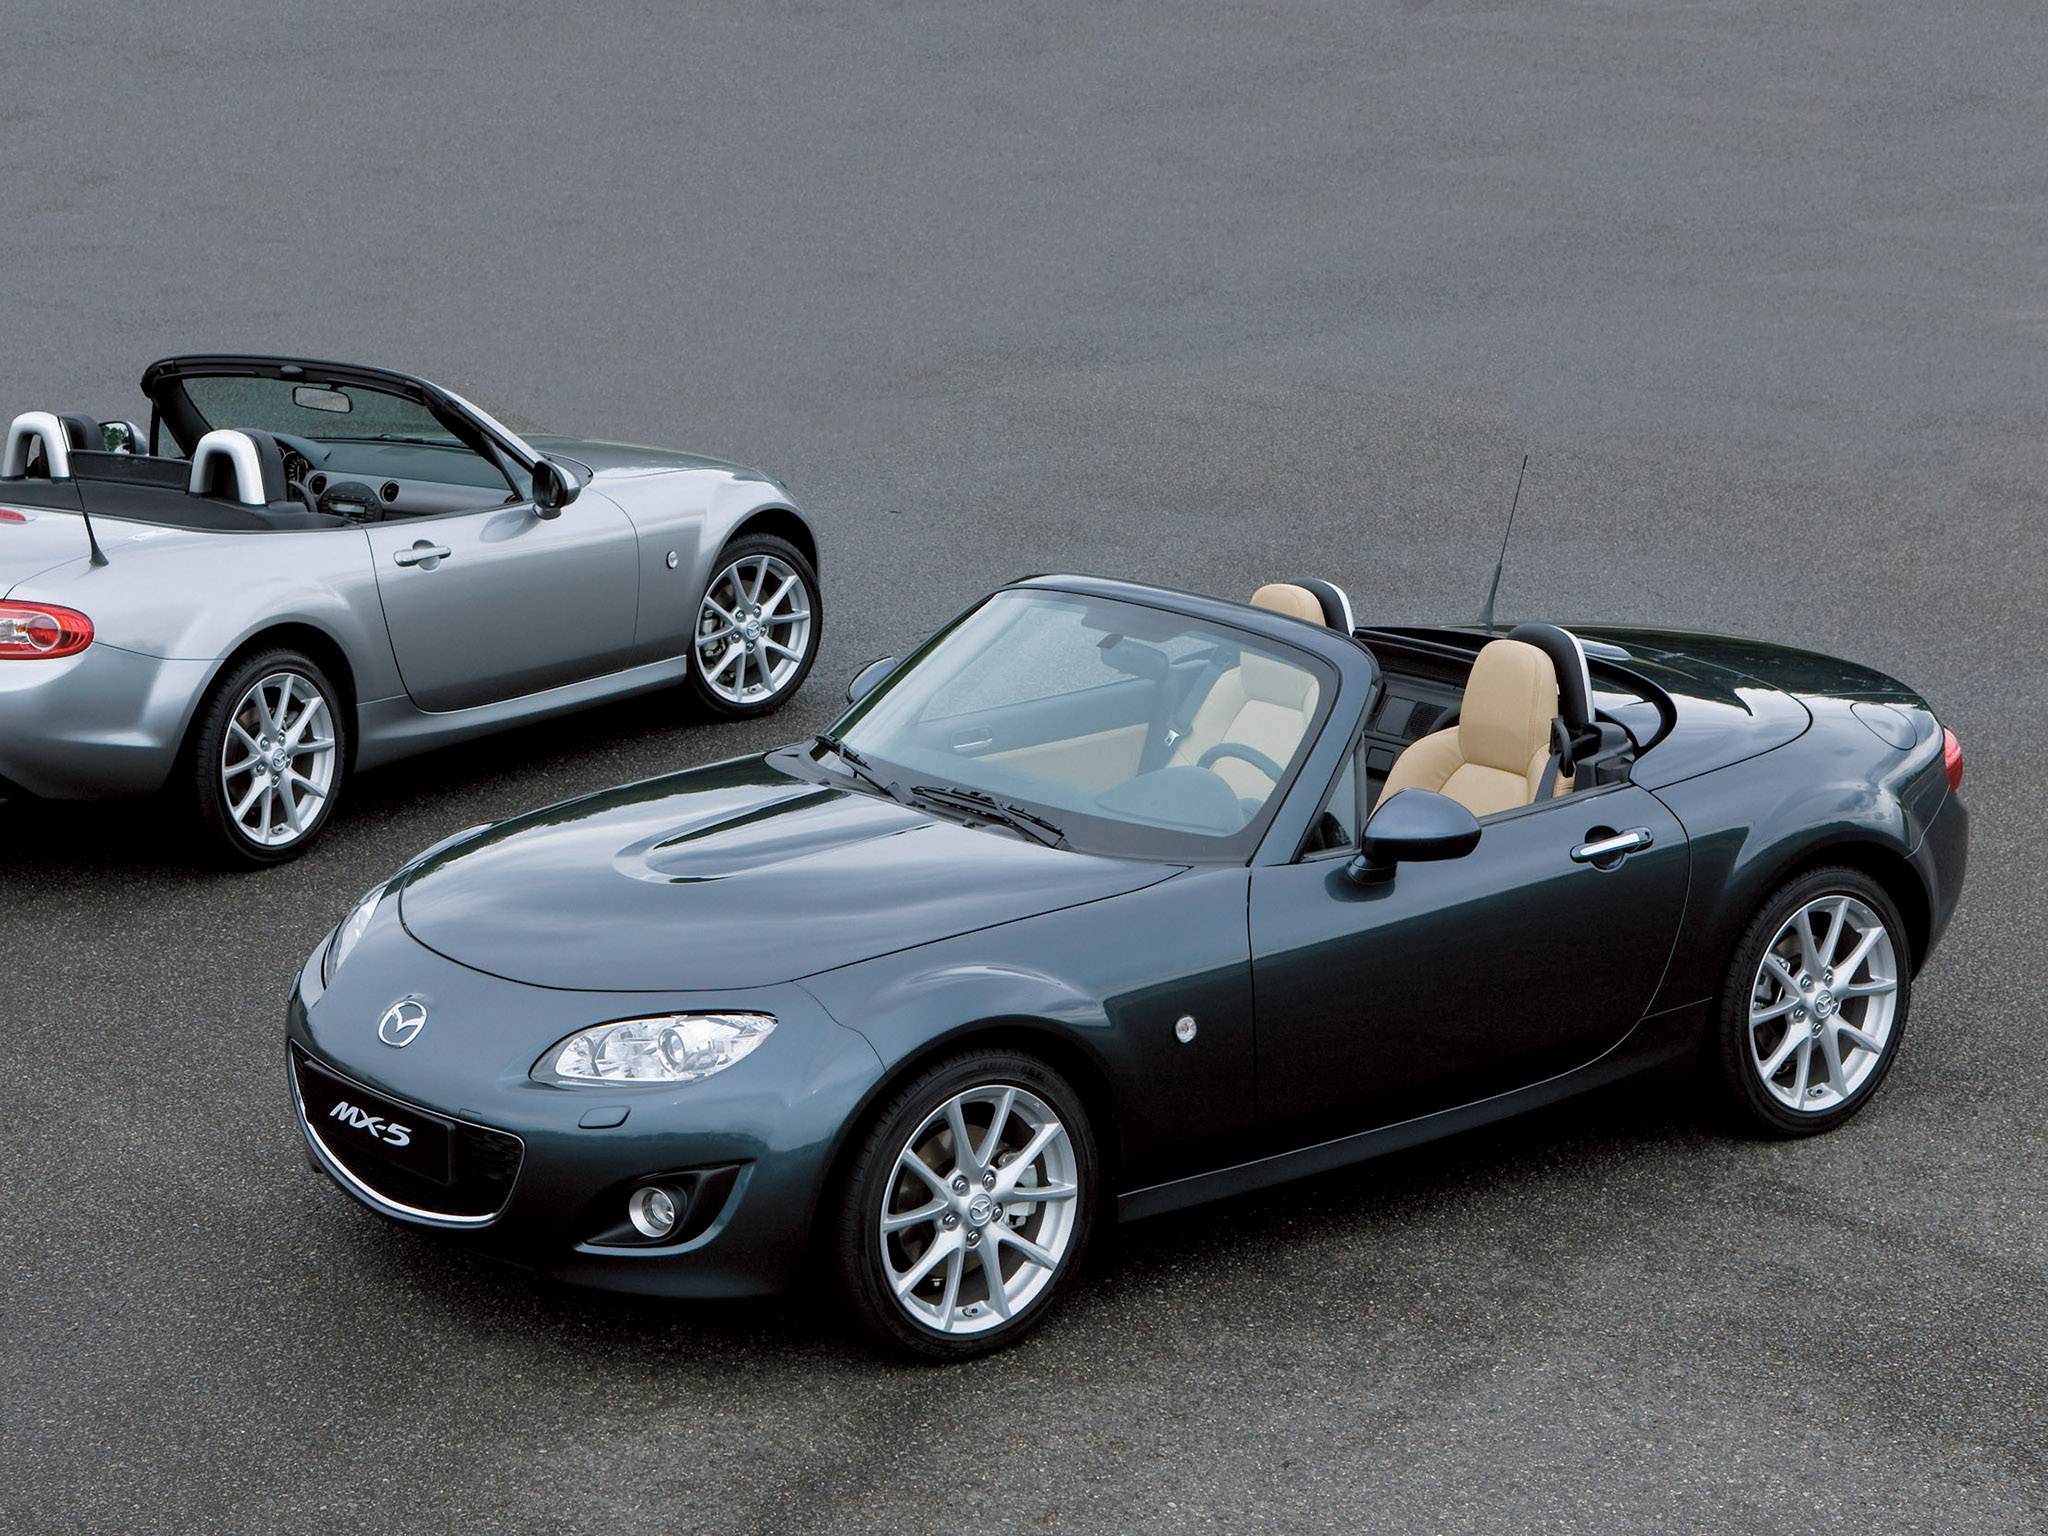 mazda mx 5 roadster coupe 2008 mazda mx 5 roadster coupe 2008 photo 06 car in pictures car. Black Bedroom Furniture Sets. Home Design Ideas